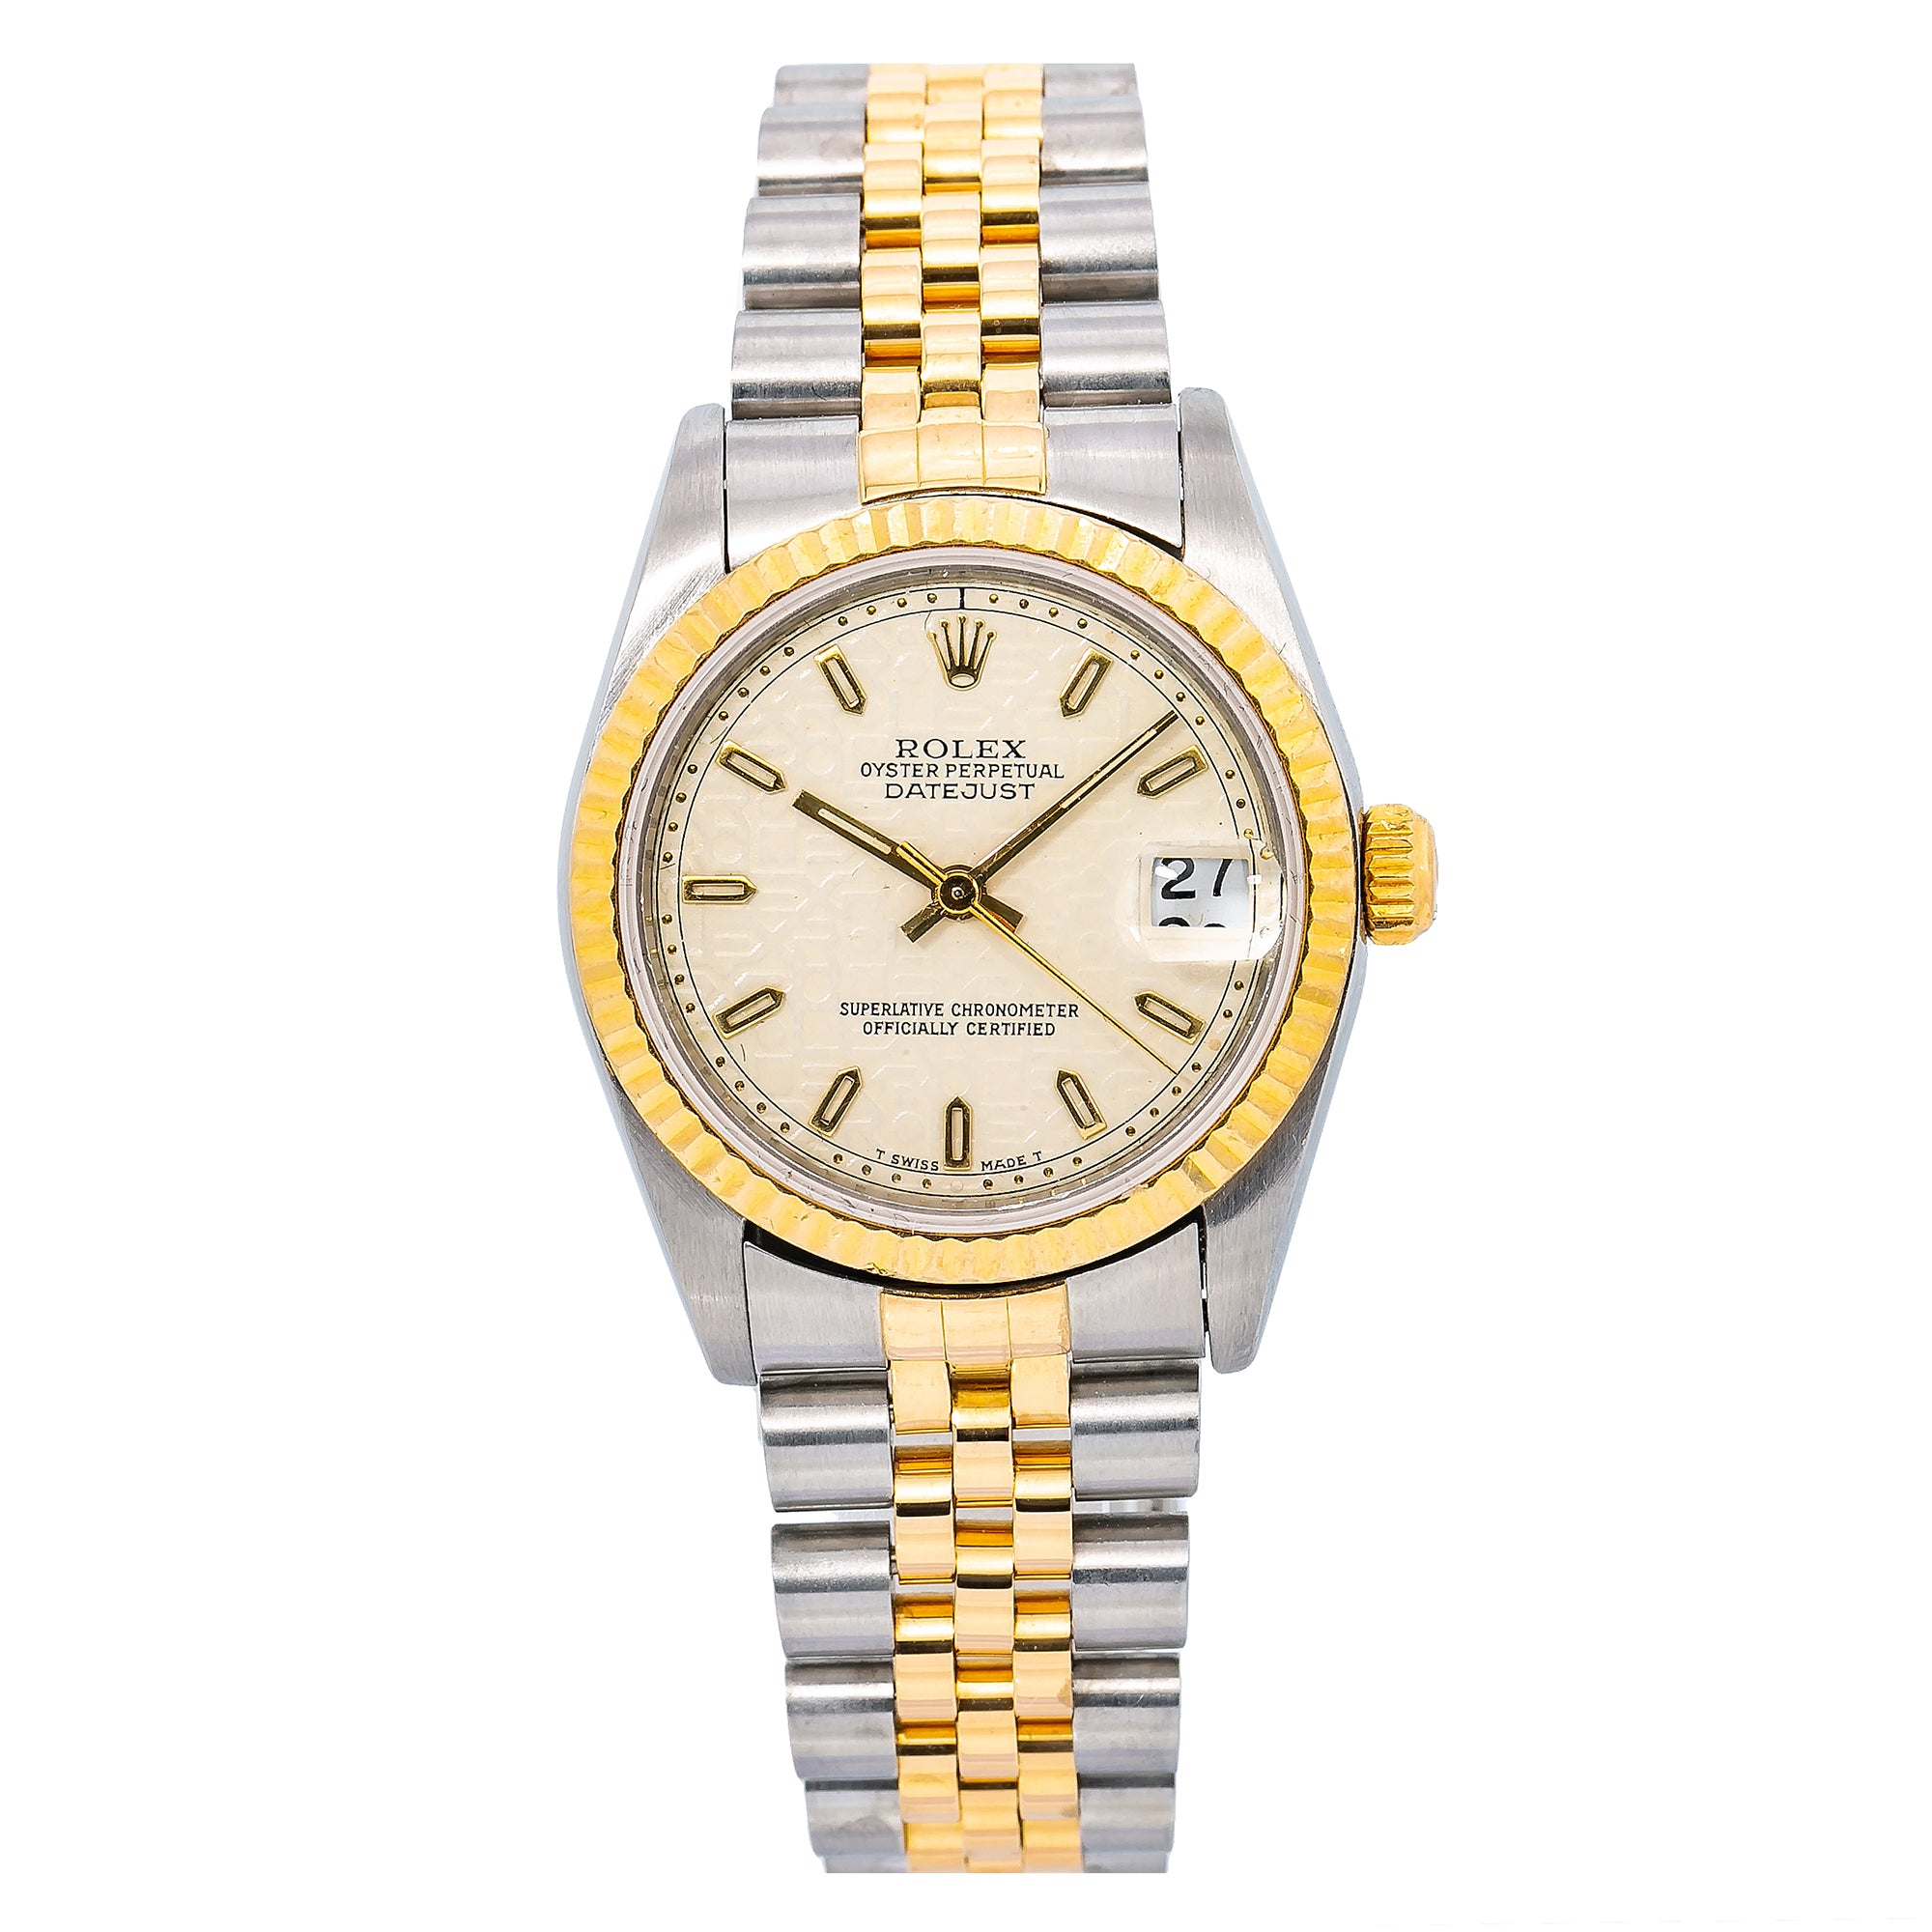 Rolex Lady-Datejust 68273 31MM Champagne Dial With Two Tone Jubilee Bracelet